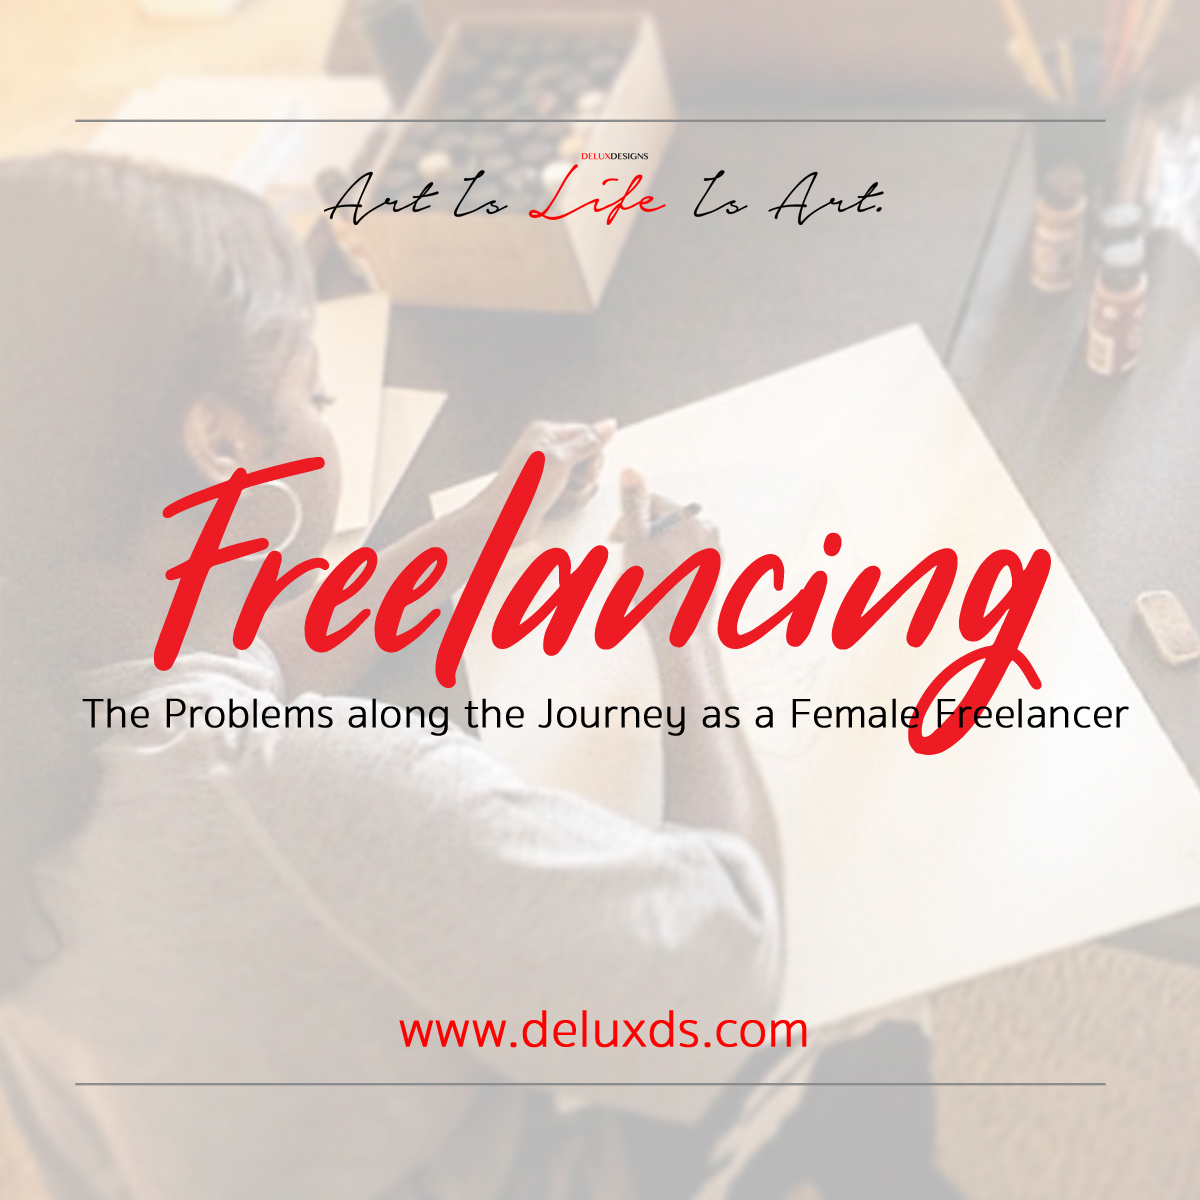 The Problems along the Journey as a Female Freelancer